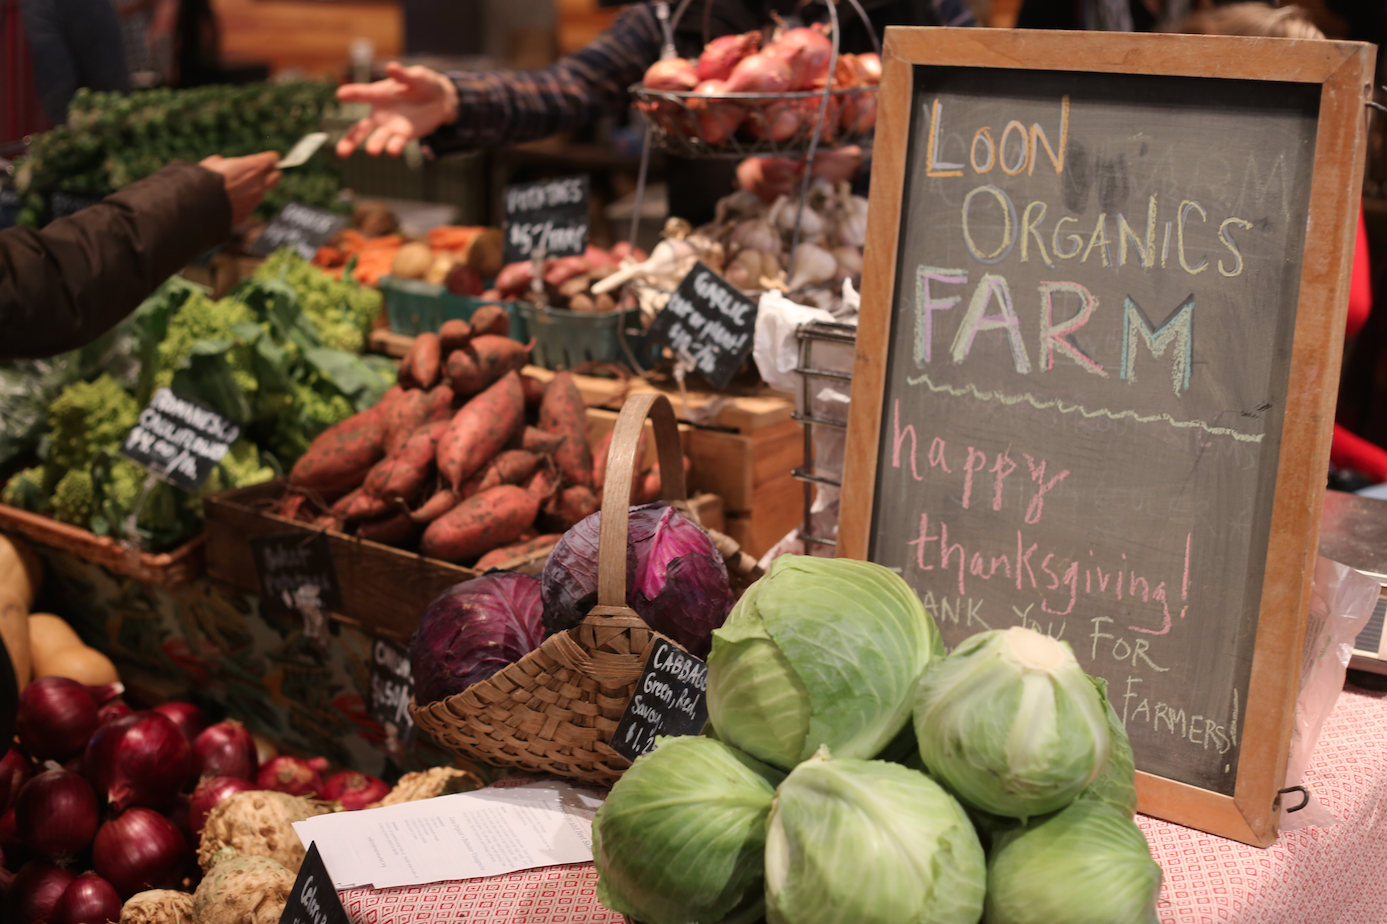 Loon Organics  is a certified-orgranic farm that is situated on 40 acres 70 miles west of Minneapolis. A must see vendor for the most beautifully cared after produce.